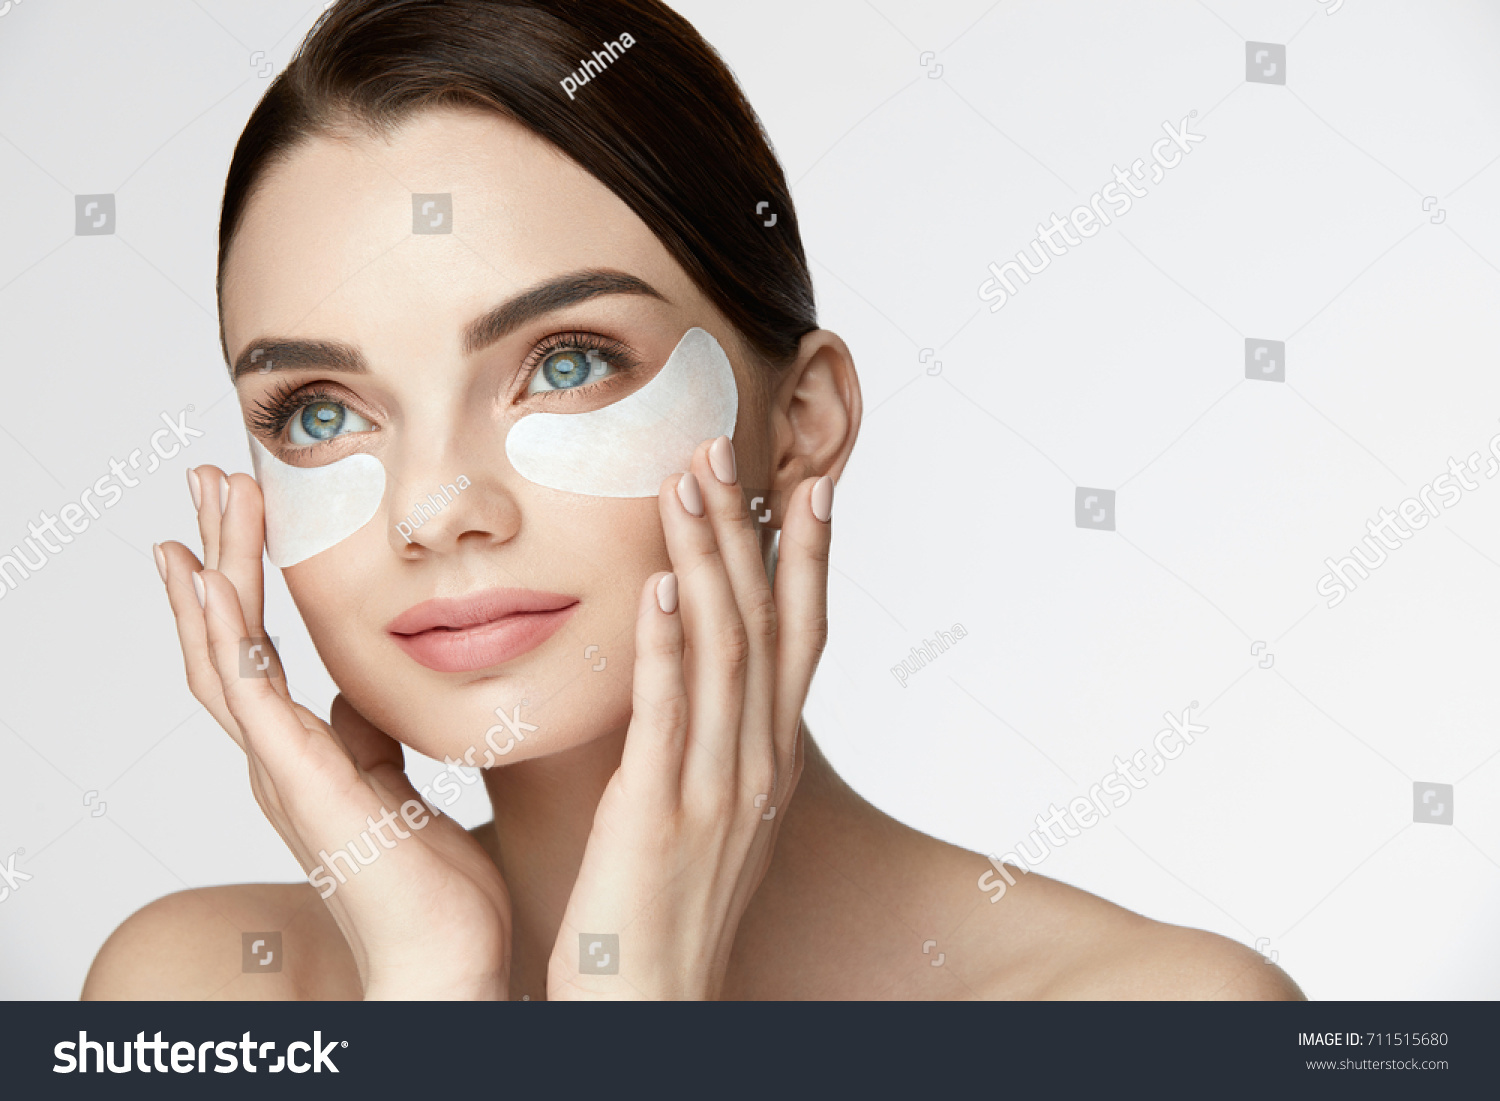 Beauty Face Skin Care Closeup Of Young Woman With Beautiful Big